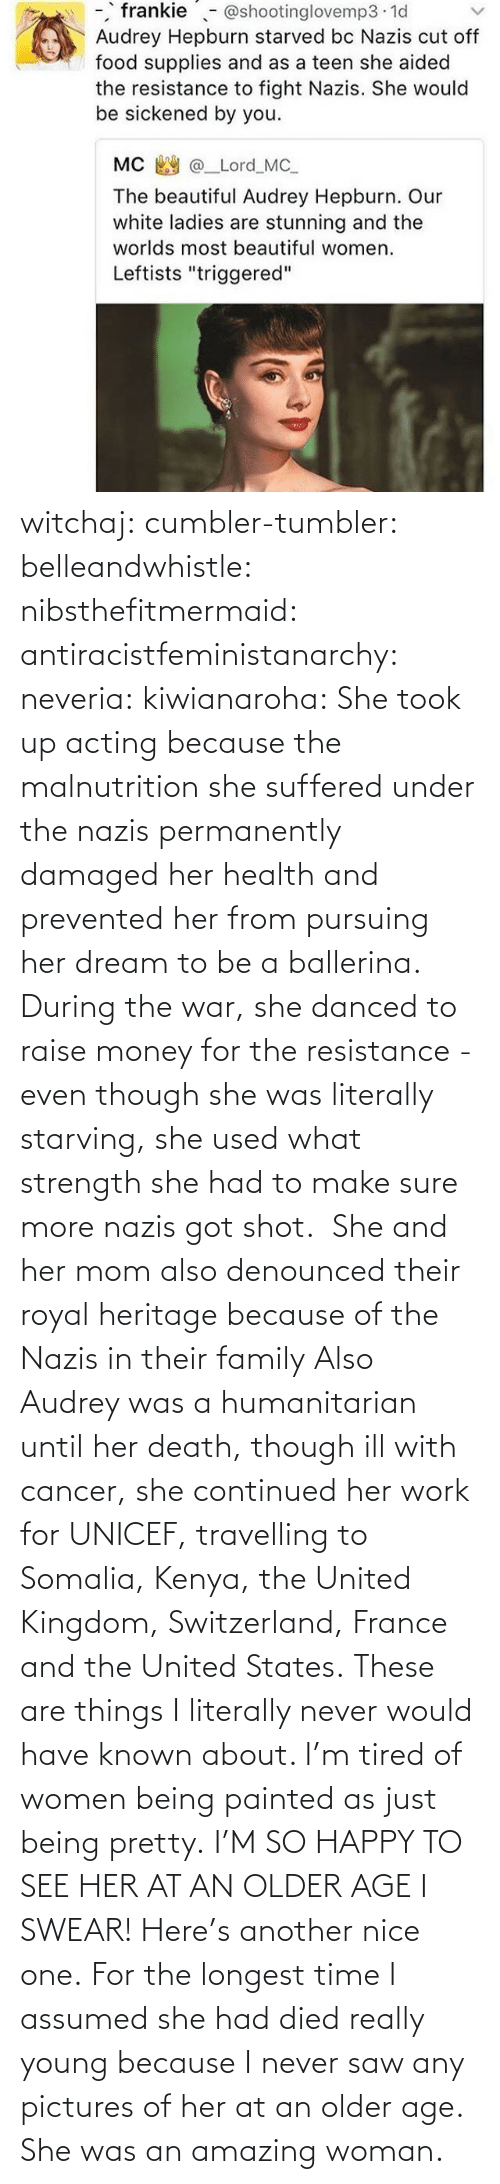 ill: witchaj: cumbler-tumbler:  belleandwhistle:  nibsthefitmermaid:  antiracistfeministanarchy:  neveria:  kiwianaroha: She took up acting because the malnutrition she suffered under the nazis permanently damaged her health and prevented her from pursuing her dream to be a ballerina. During the war, she danced to raise money for the resistance - even though she was literally starving, she used what strength she had to make sure more nazis got shot.  She and her mom also denounced their royal heritage because of the Nazis in their family  Also Audrey was a humanitarian until her death, though ill with cancer, she continued her work for UNICEF, travelling to Somalia, Kenya, the United Kingdom, Switzerland, France and the United States.  These are things I literally never would have known about. I'm tired of women being painted as just being pretty.  I'M SO HAPPY TO SEE HER AT AN OLDER AGE I SWEAR!  Here's another nice one.   For the longest time I assumed she had died really young because I never saw any pictures of her at an older age.  She was an amazing woman.